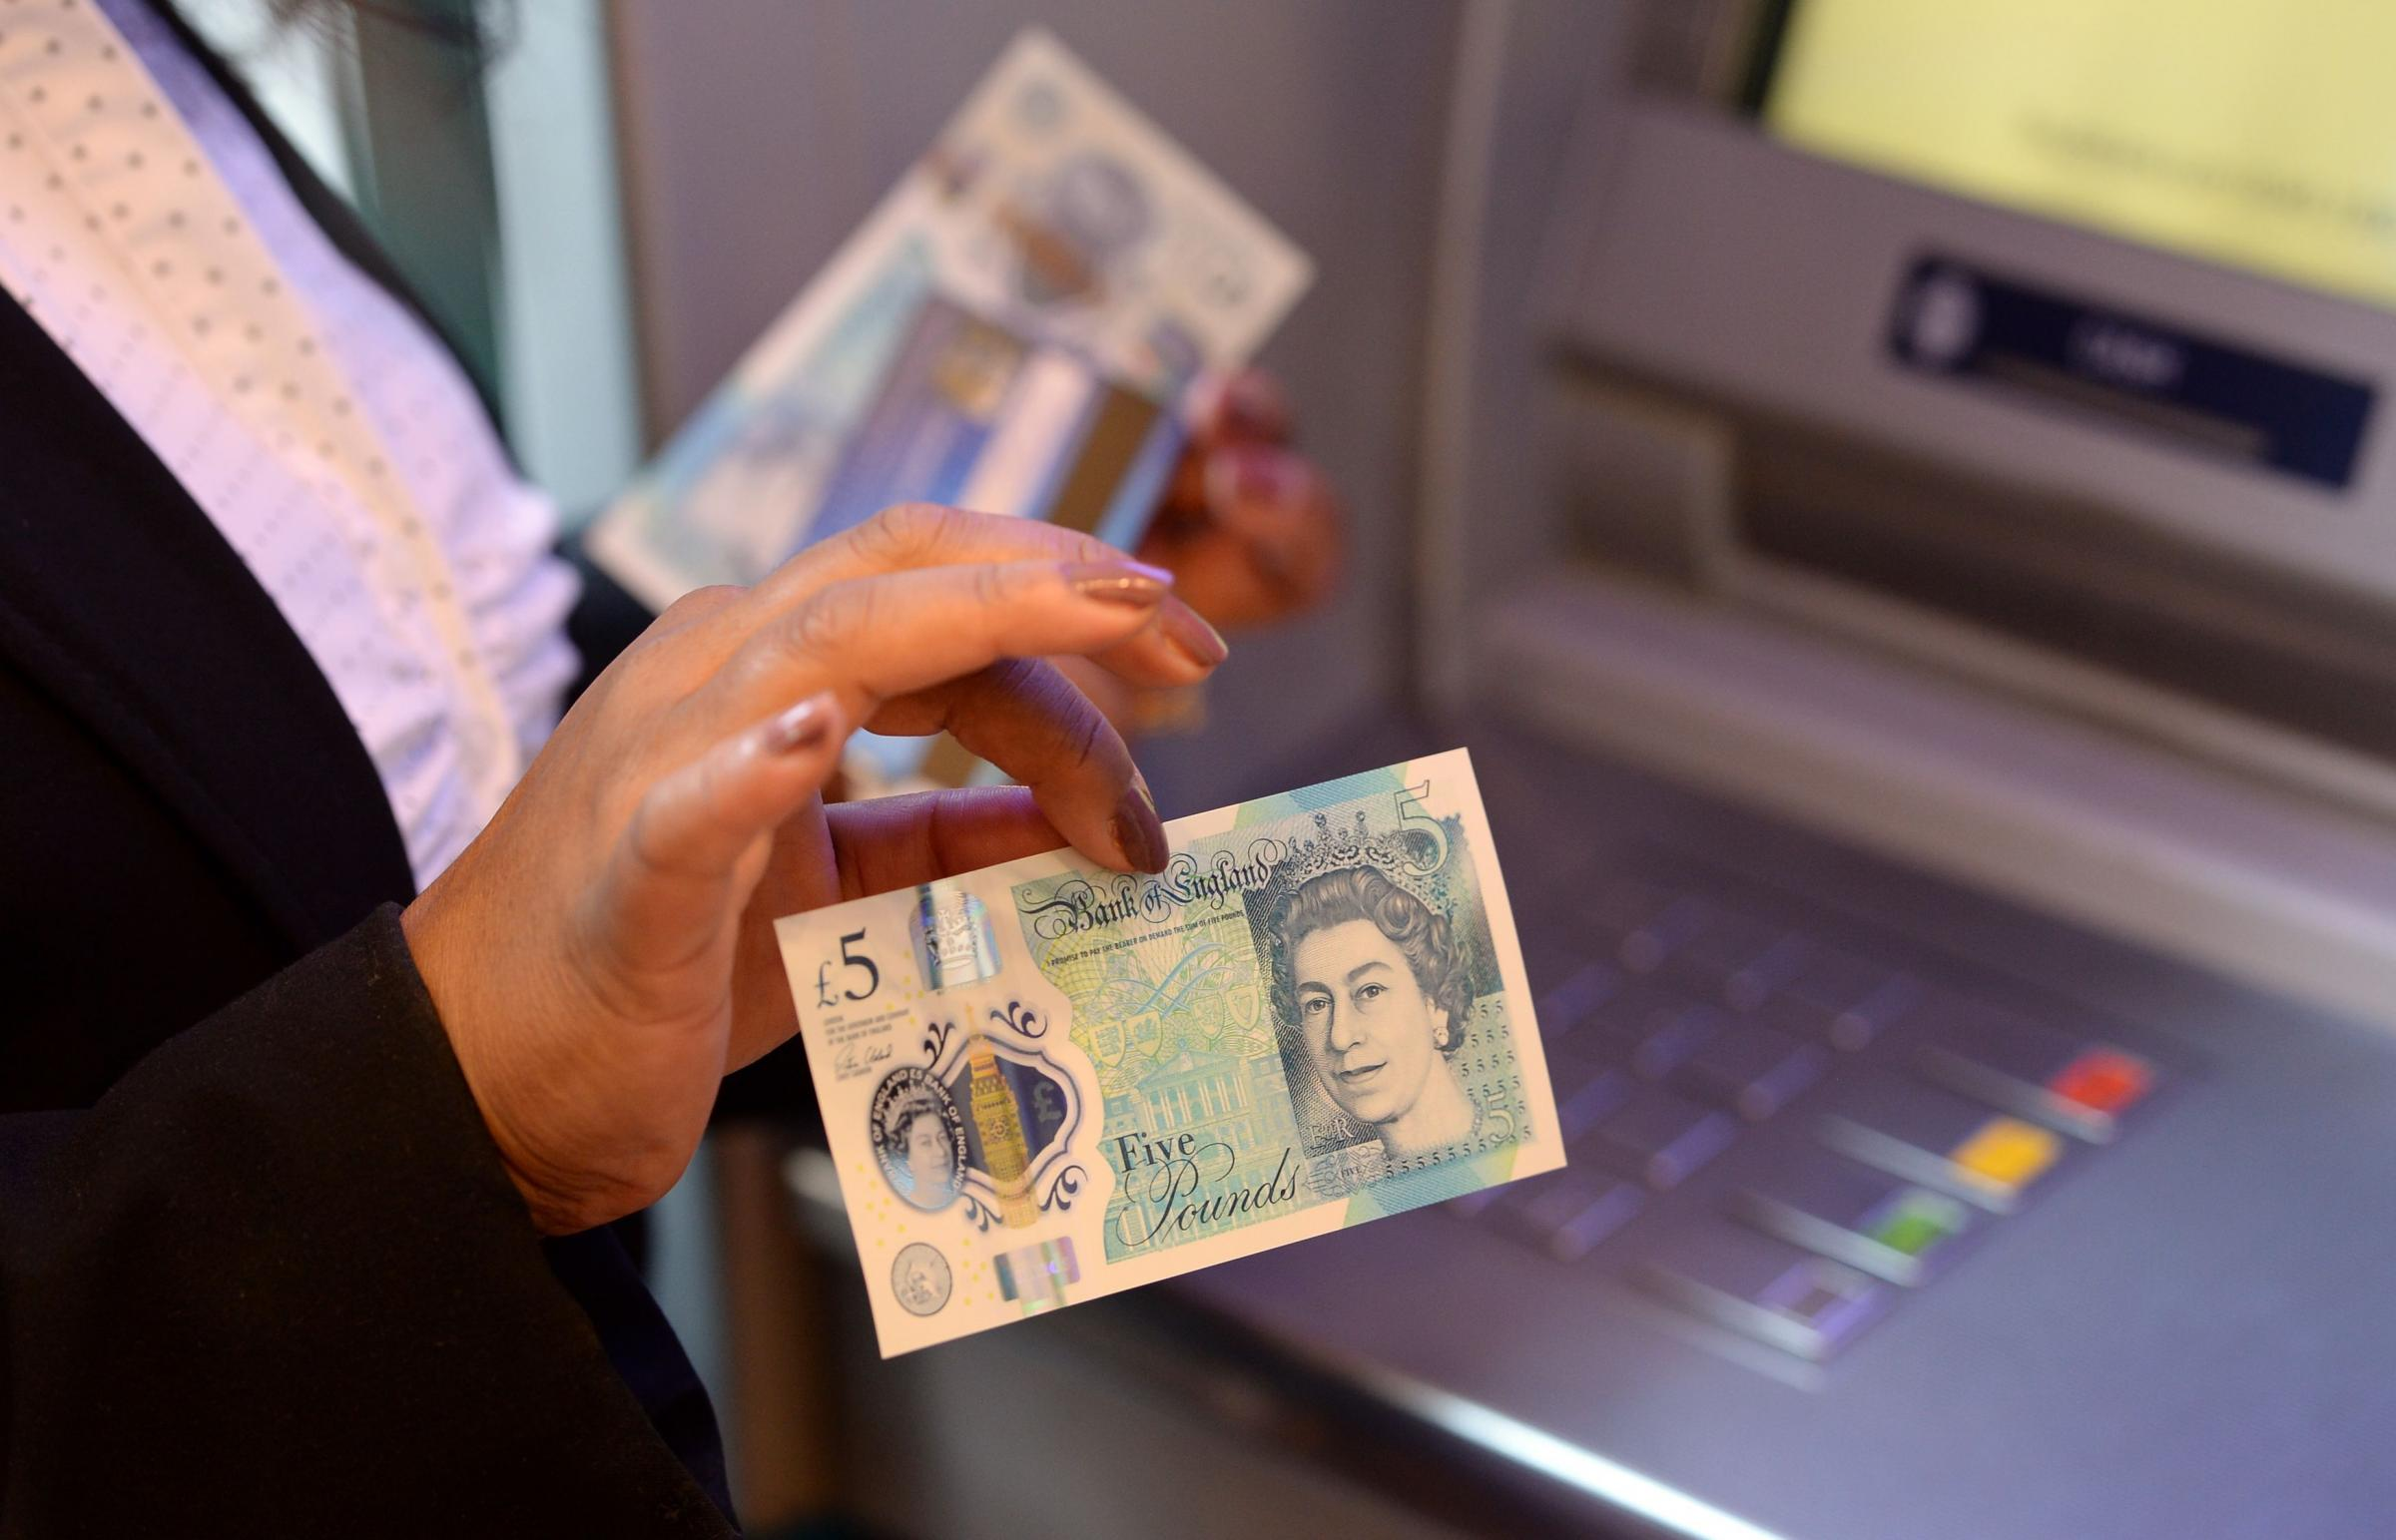 ATM: Proposals to get rid of cash machines could hit North Yorkshire particularly badly. Picture: JOE GIDDENS/PA WIRE